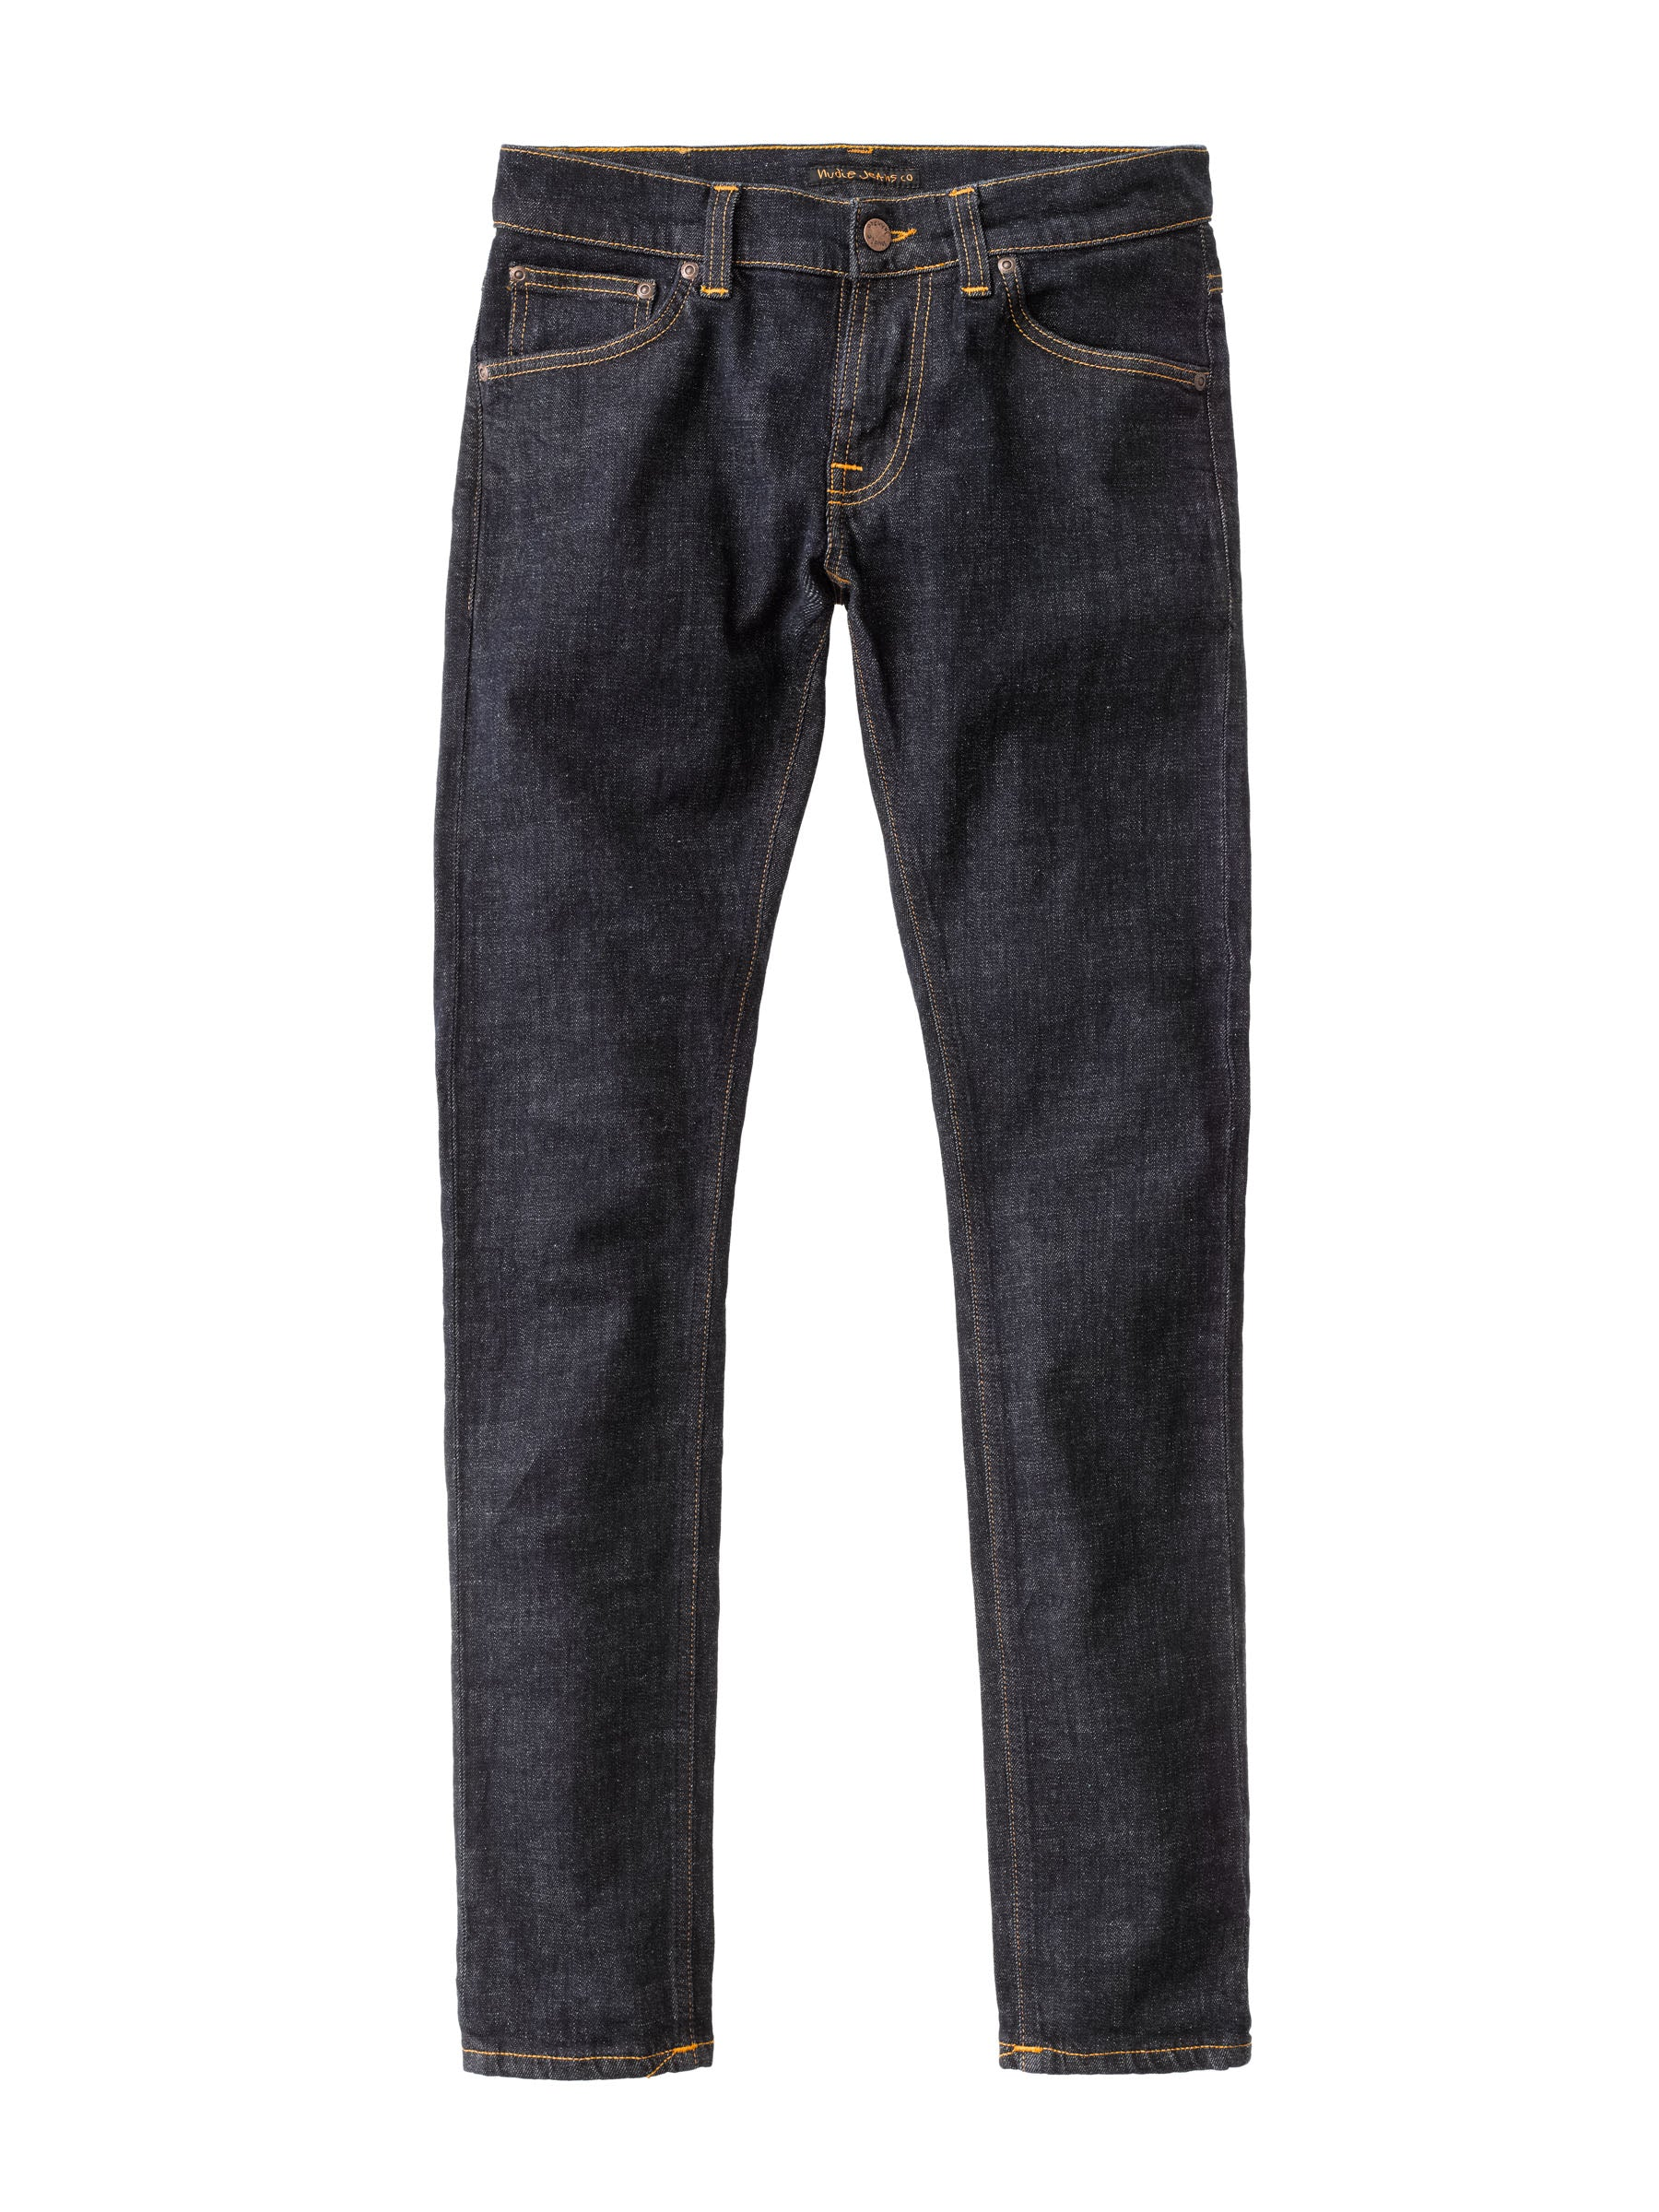 Jean skinny brut coton bio - tight terry - Nudie Jeans num 3